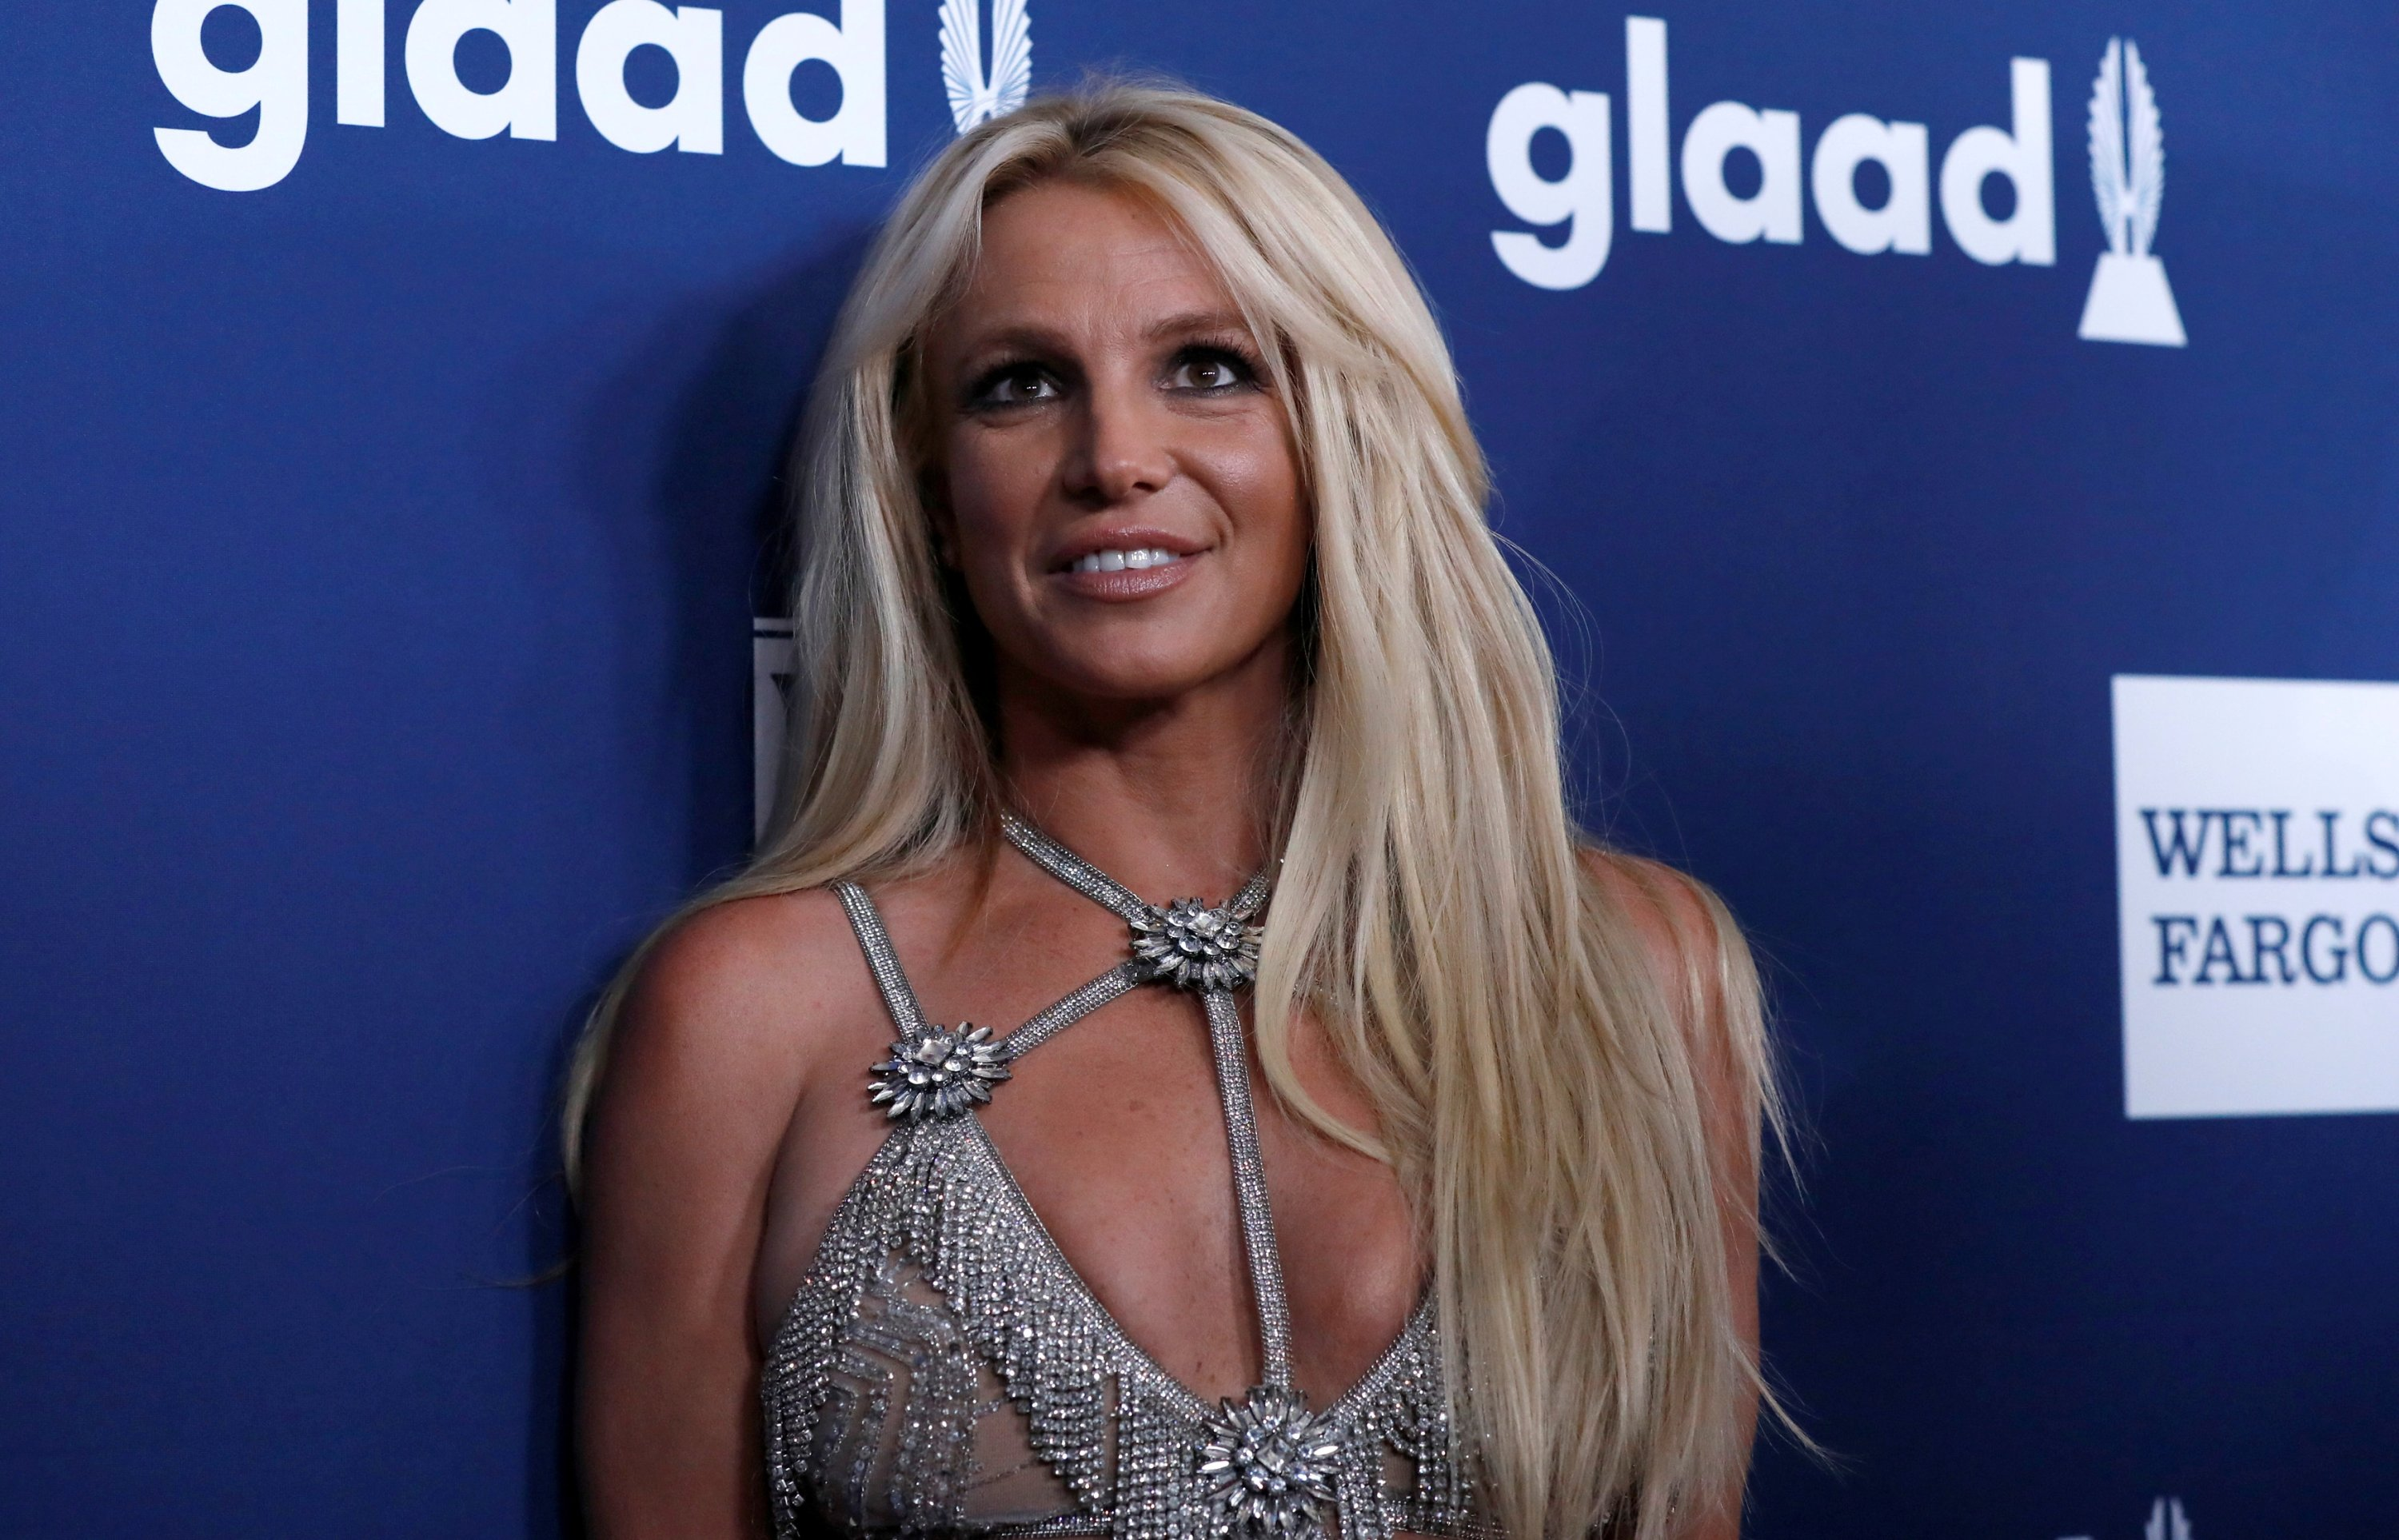 Singer Britney Spears poses at the 29th Annual GLAAD Media Awards in Beverly Hills, California, U.S., April1 2, 2018. (REUTERS Photo)